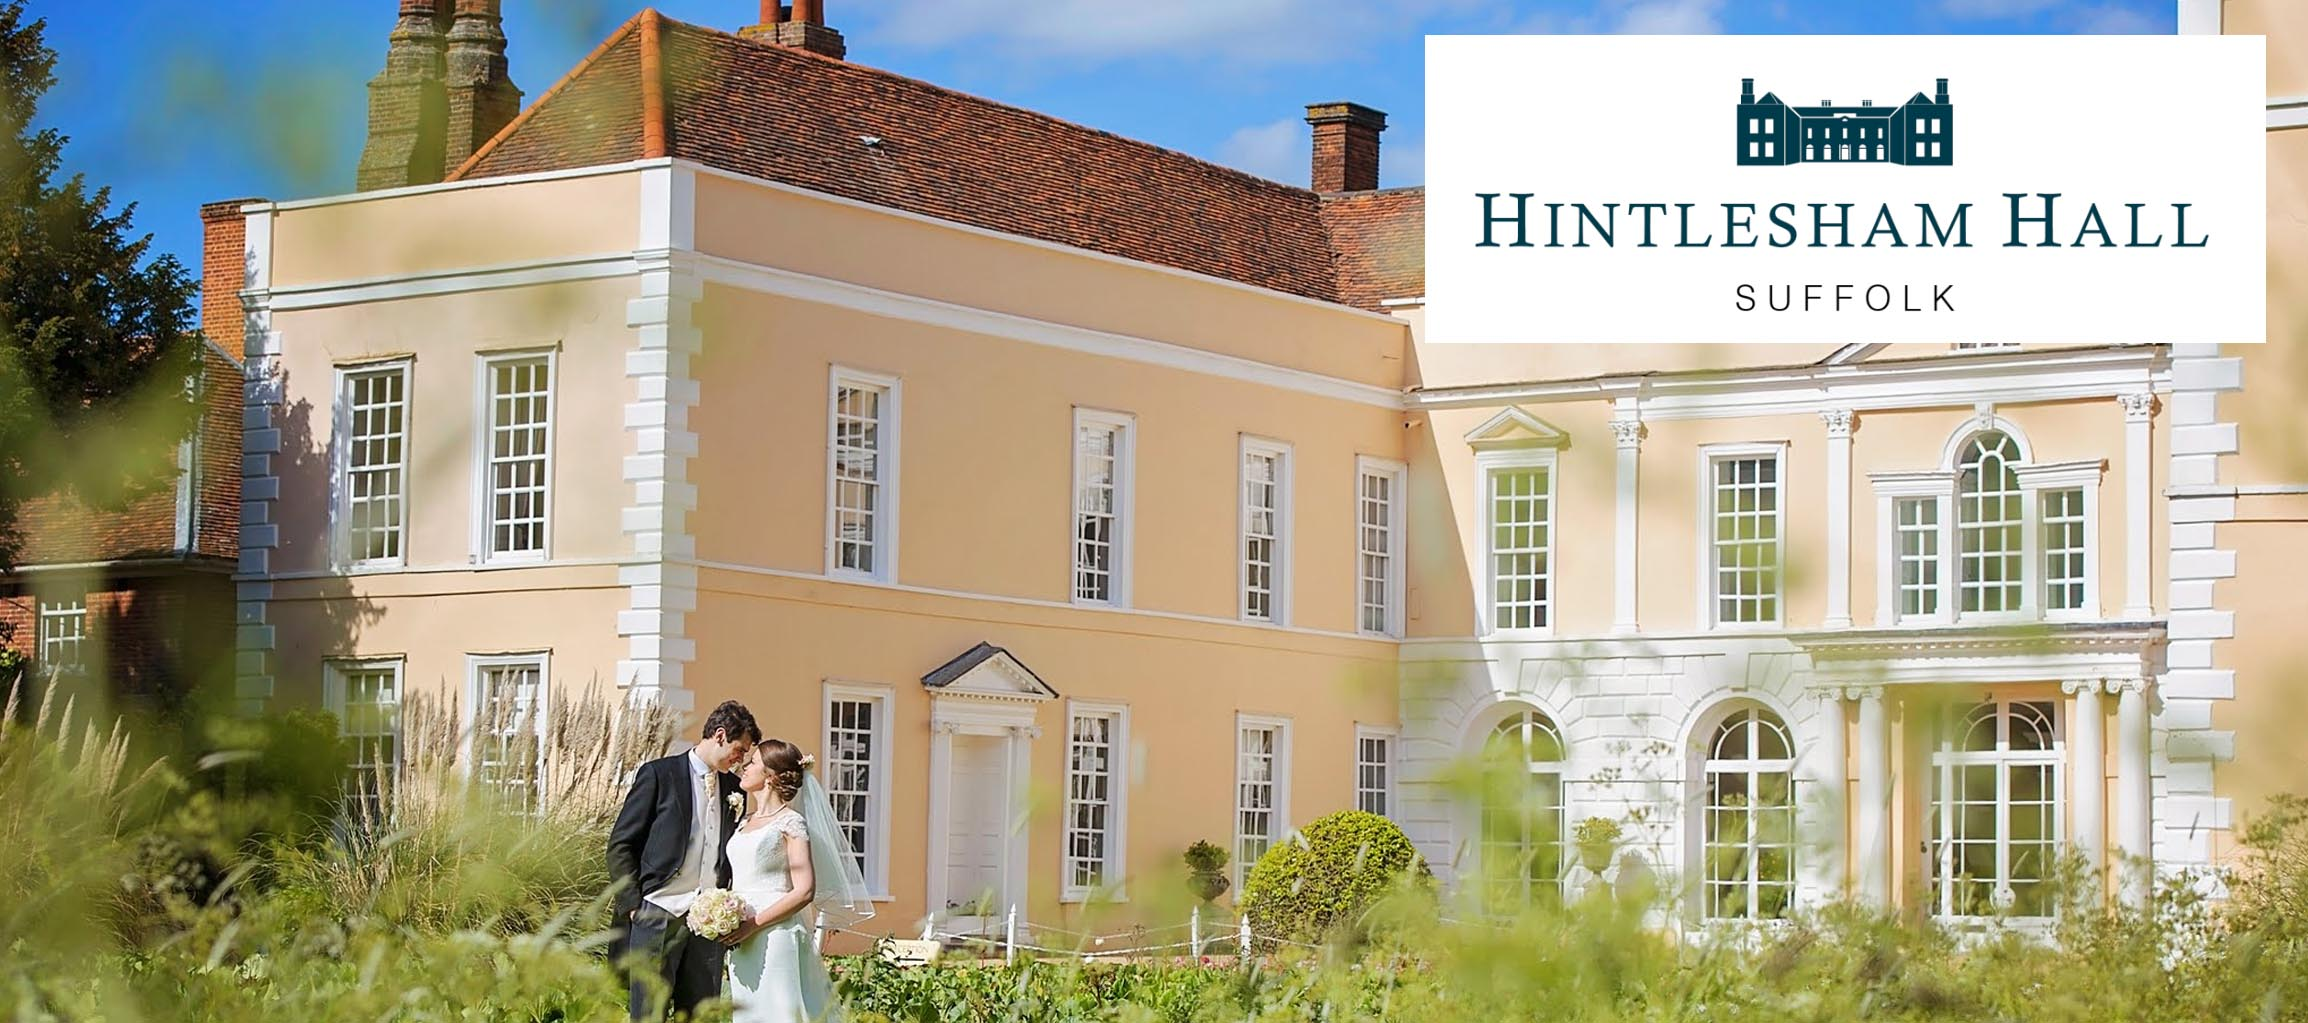 Hintlesham Hall. - 29th Oct '17 - Hintlesham Hall, Ipswich.12.00 - 4.00pm